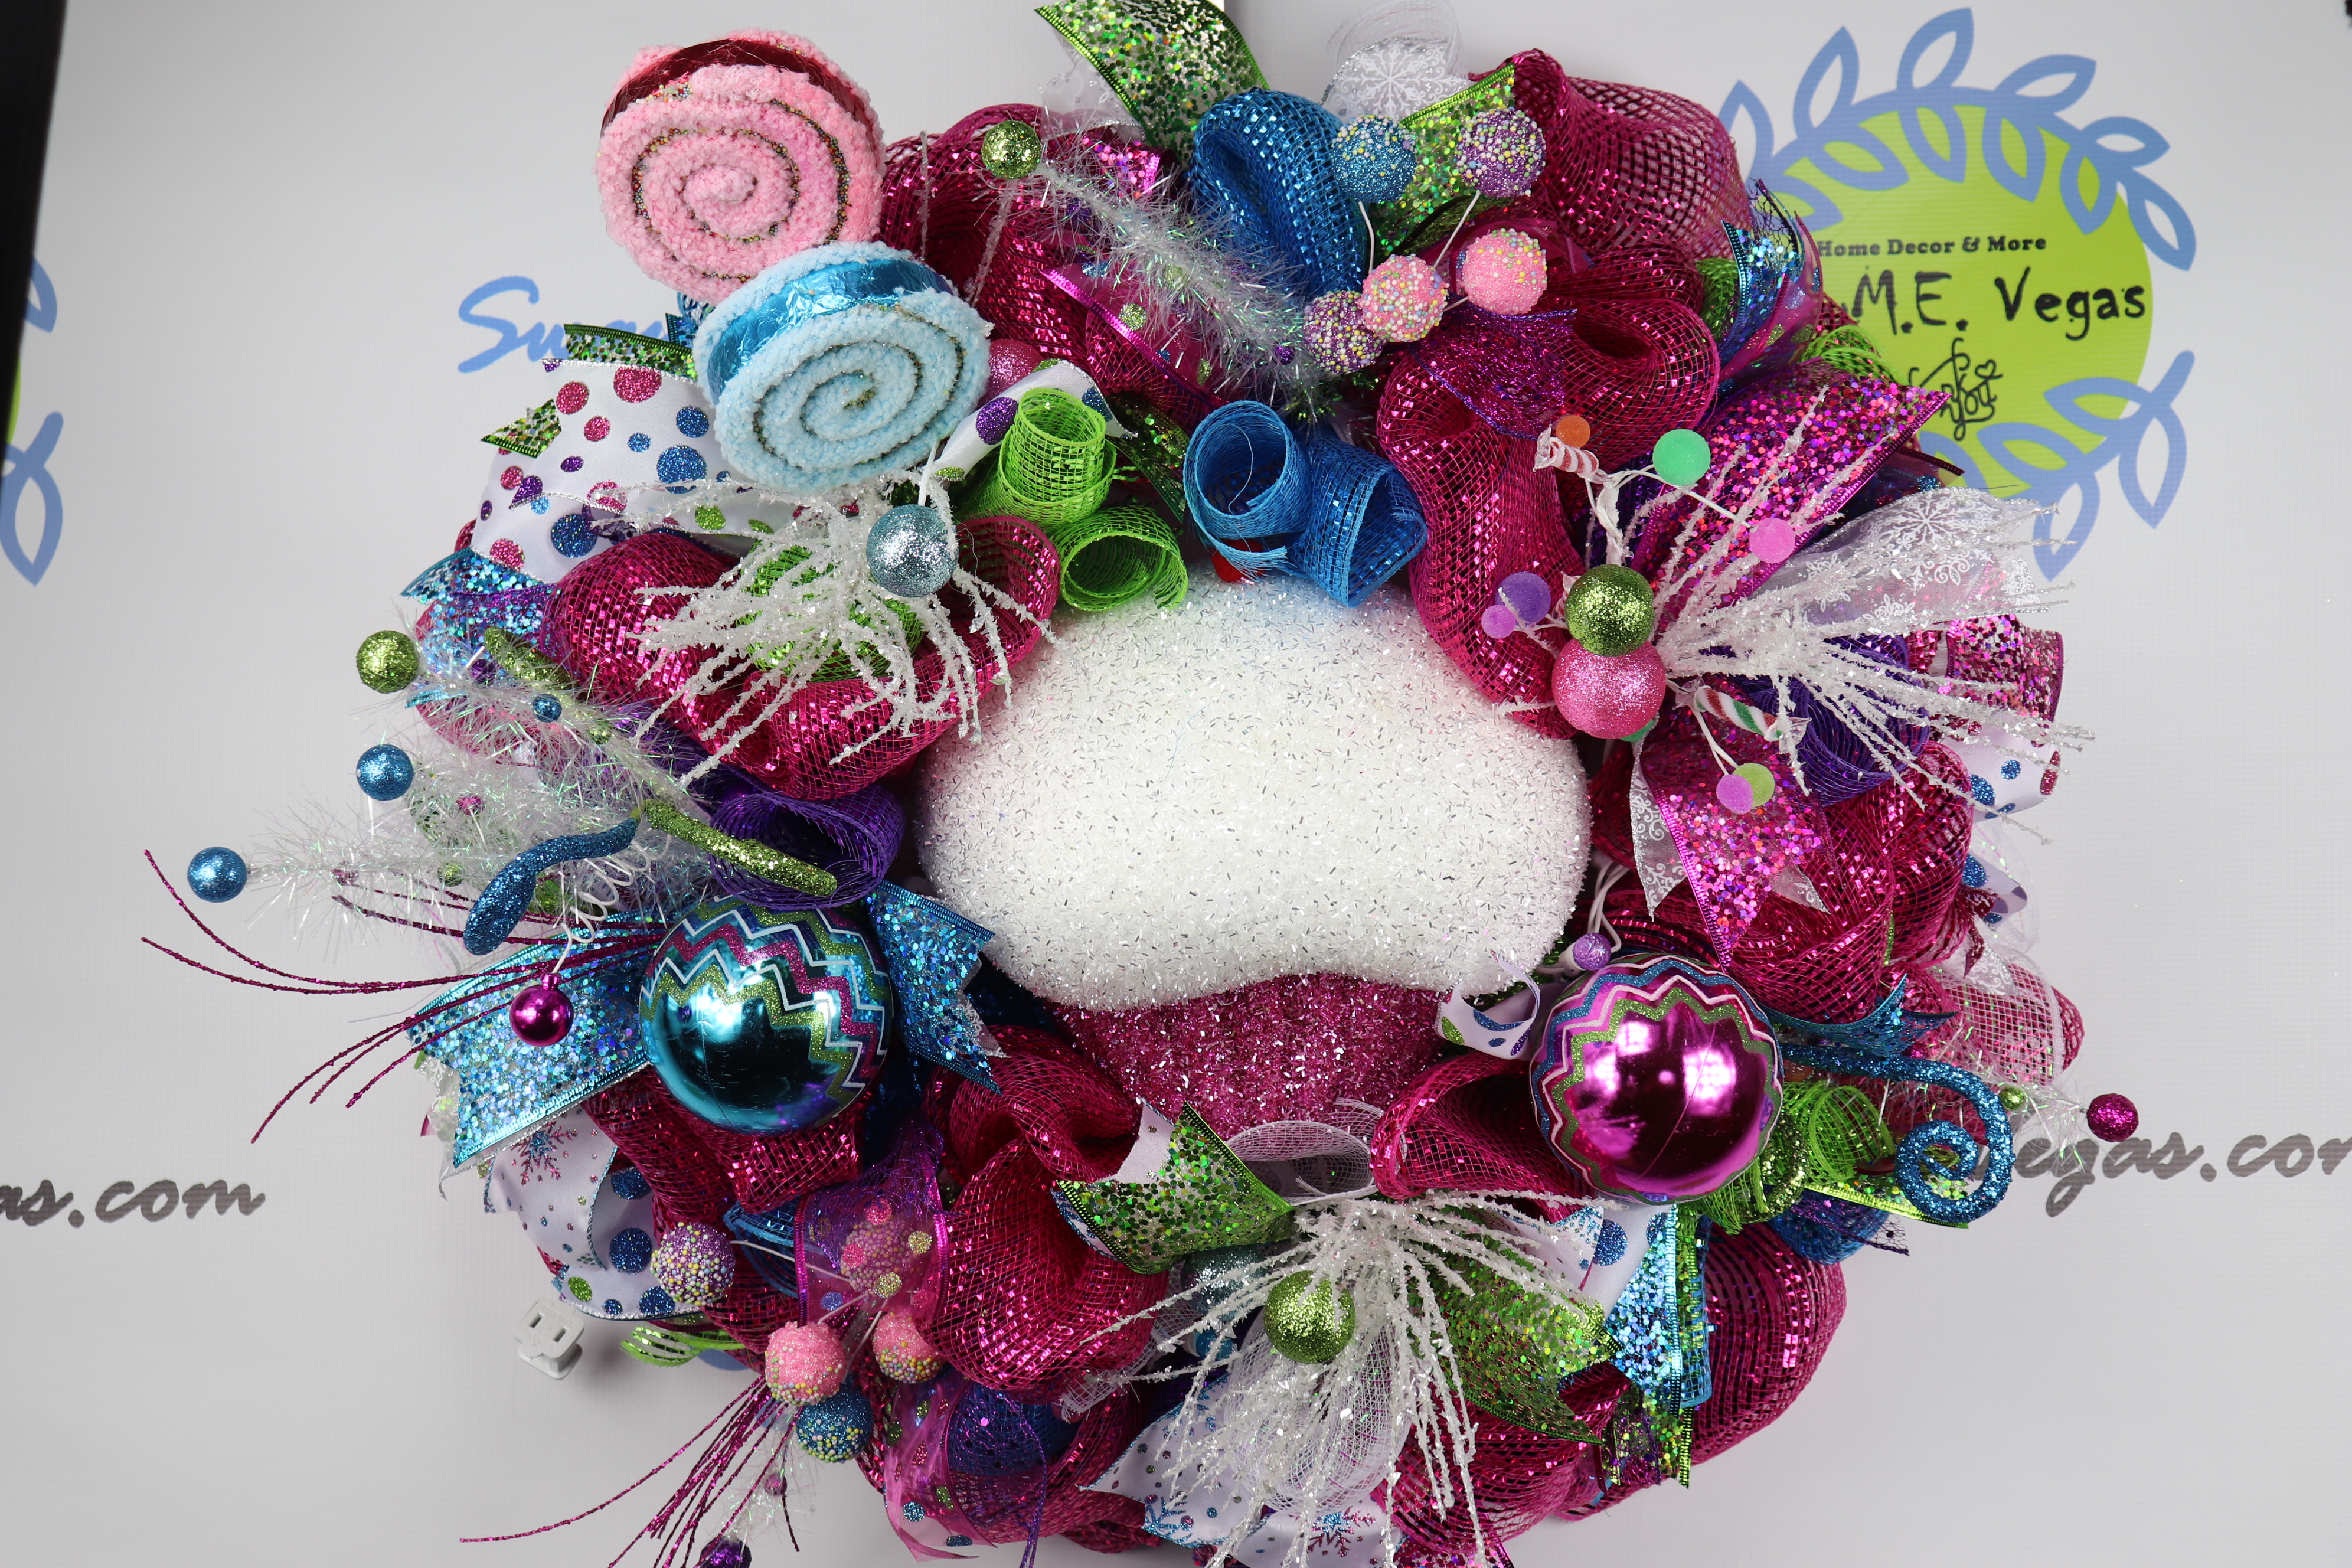 Whimsical-Lighted-Candy-Christmas-Wreath-1 Lighted Whimsical Candy Christmas Wreath